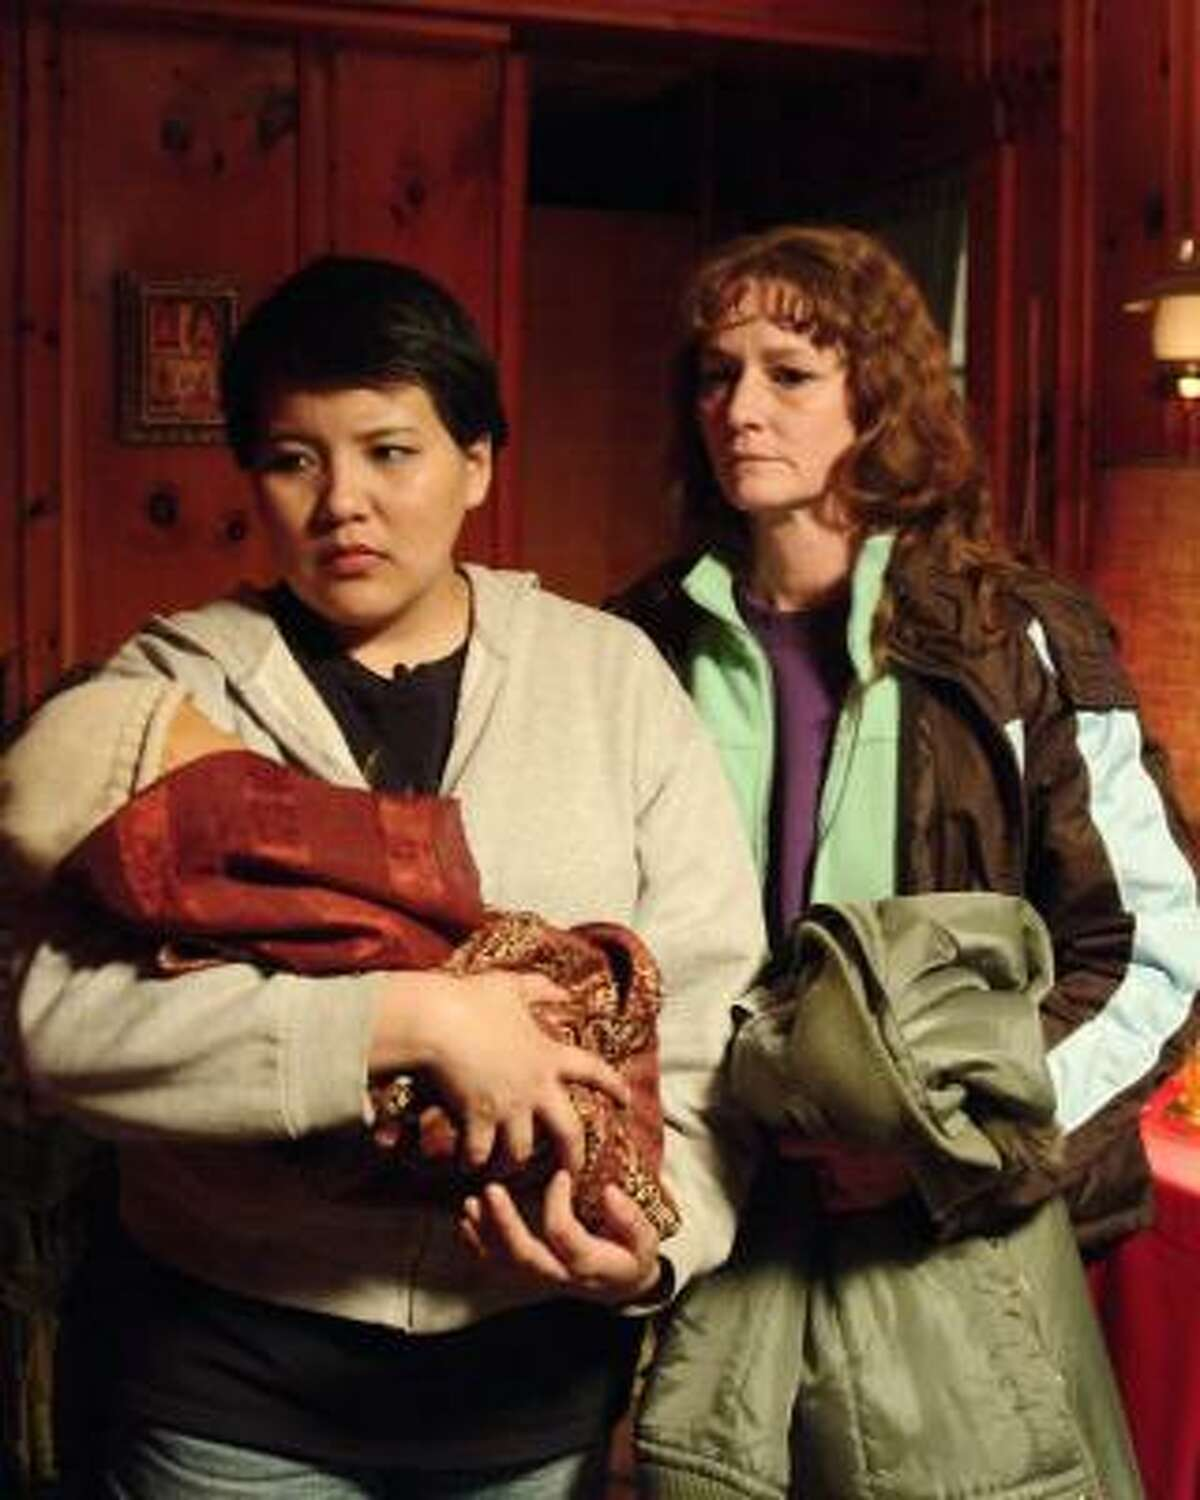 Misty Upham, left, and Melissa Leo Frozen River, which is about two single mothers faced with desperate circumstances who are drawn into the world of border smuggling.